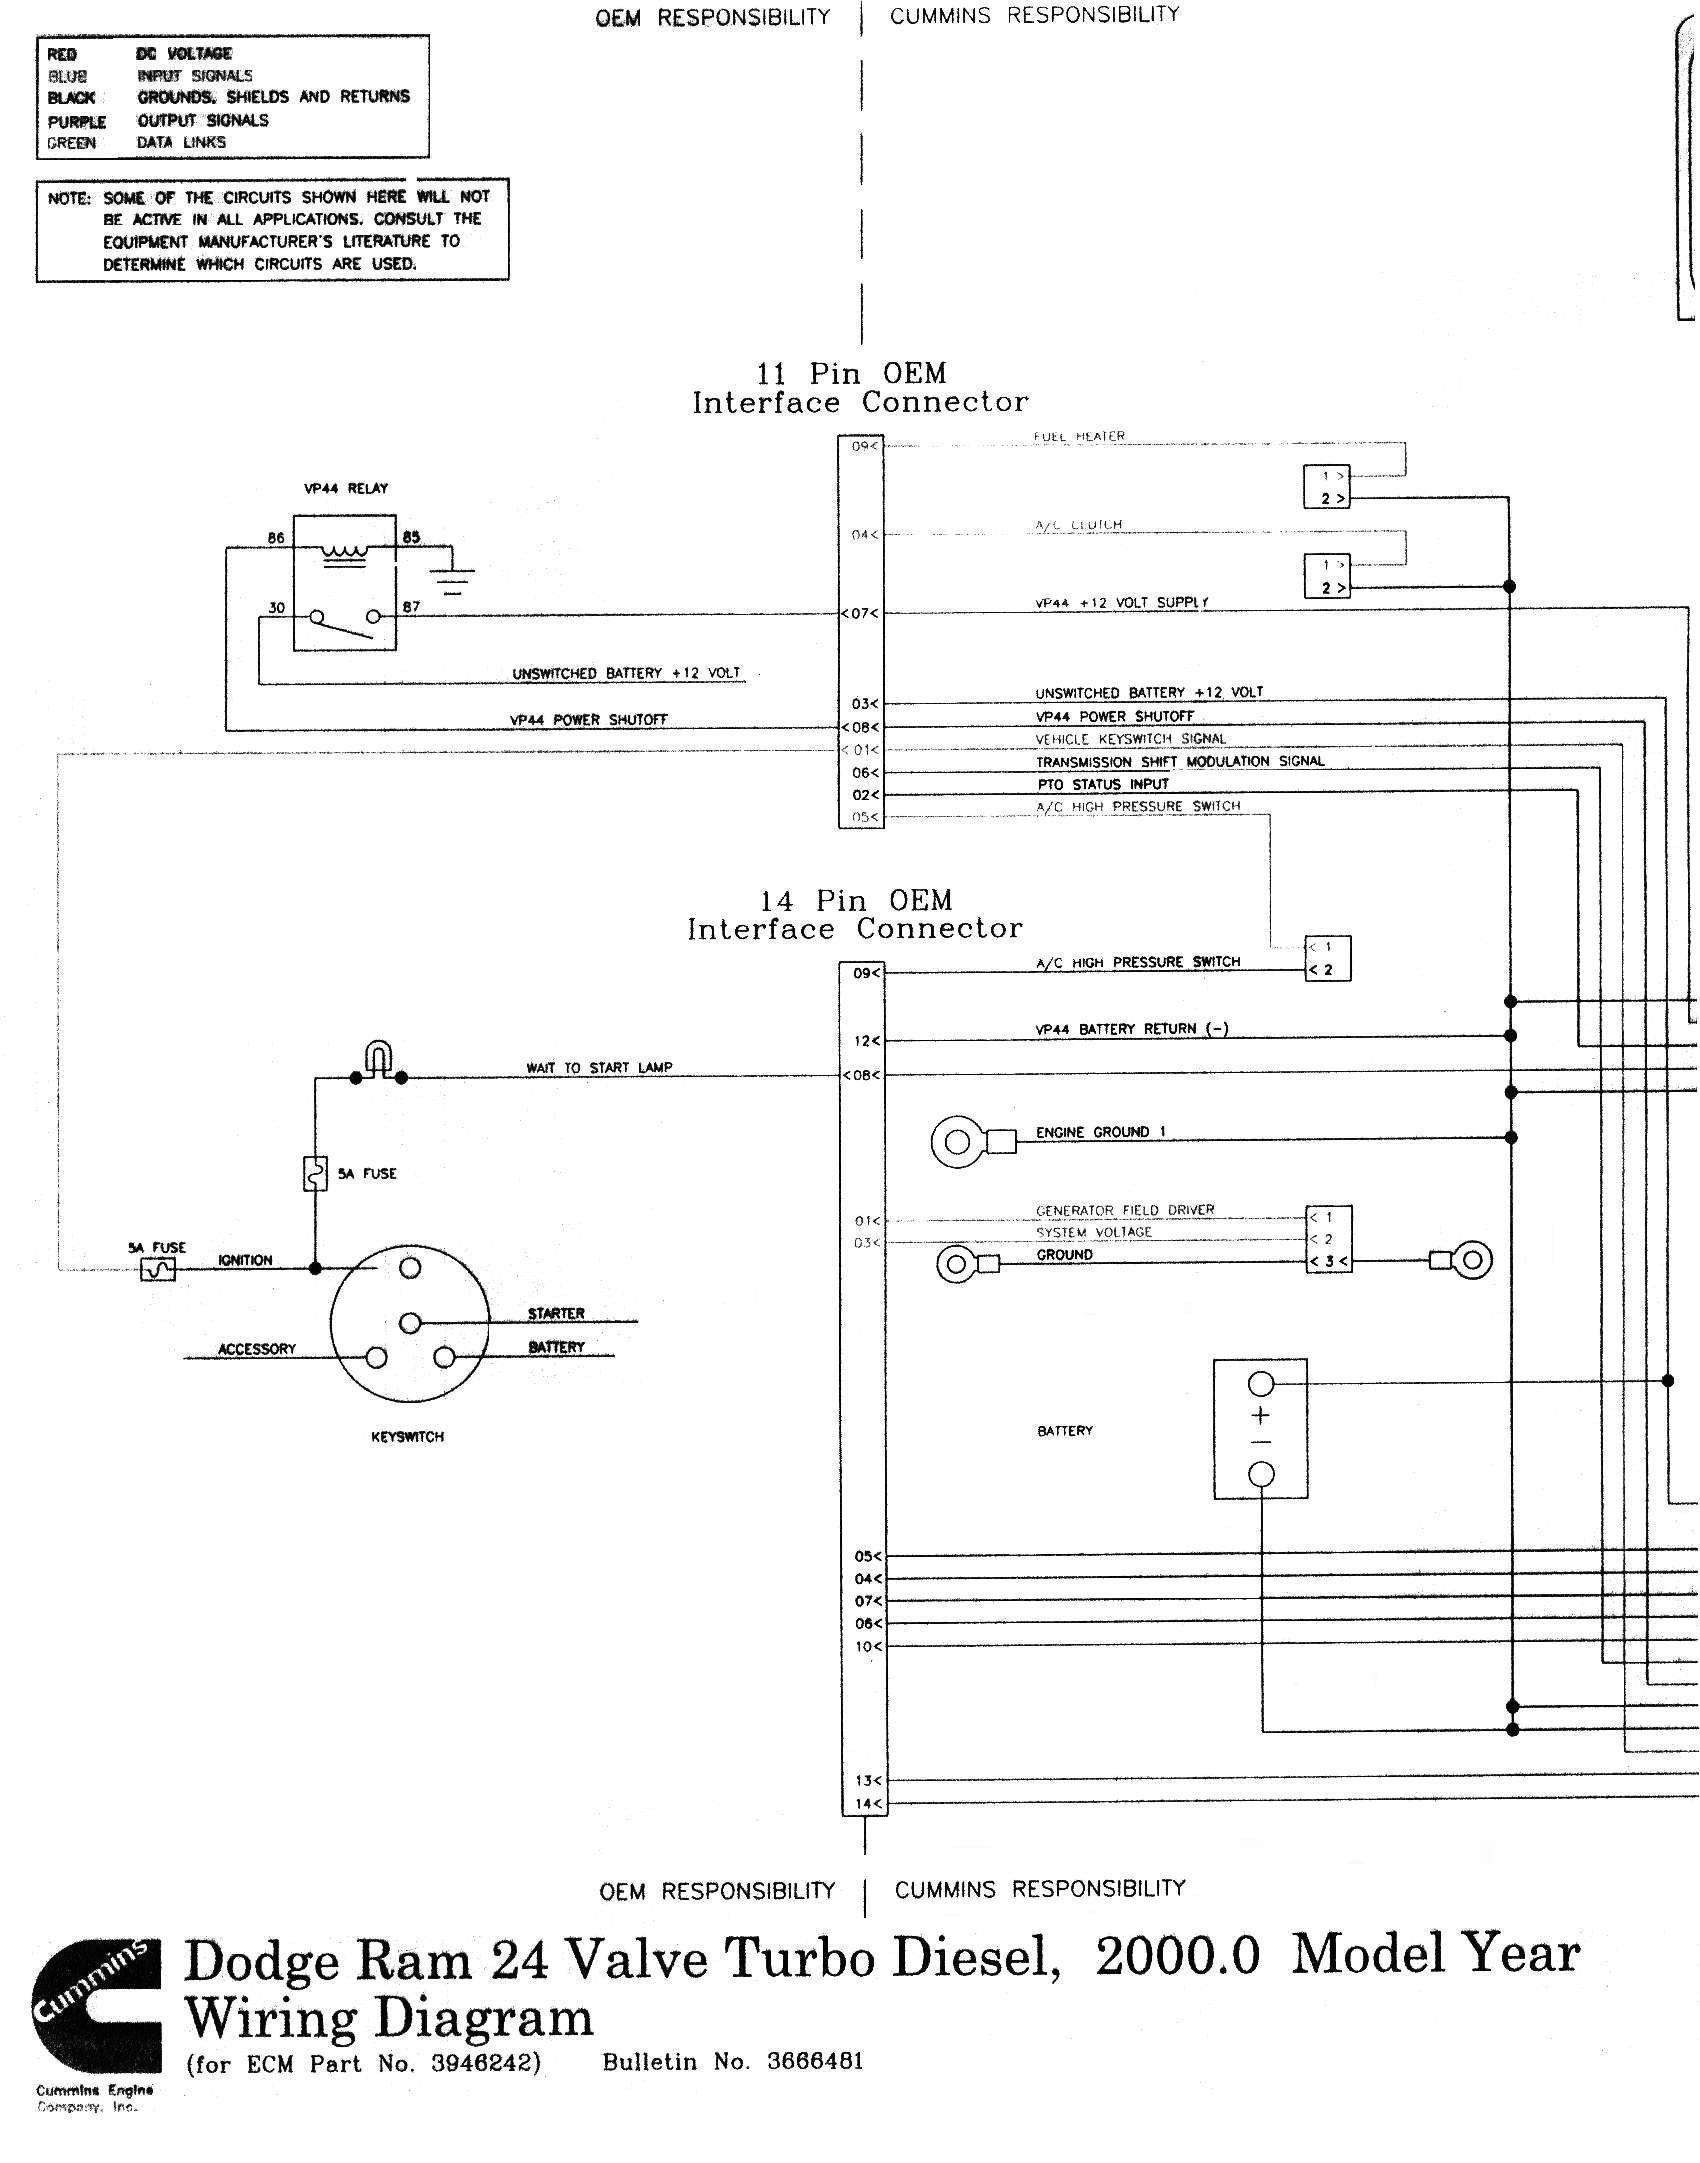 Cummins Diesel Engine Diagram Dodge Cummins Diesel Fuel Line Diagram Dodge Obd Connector Wiring